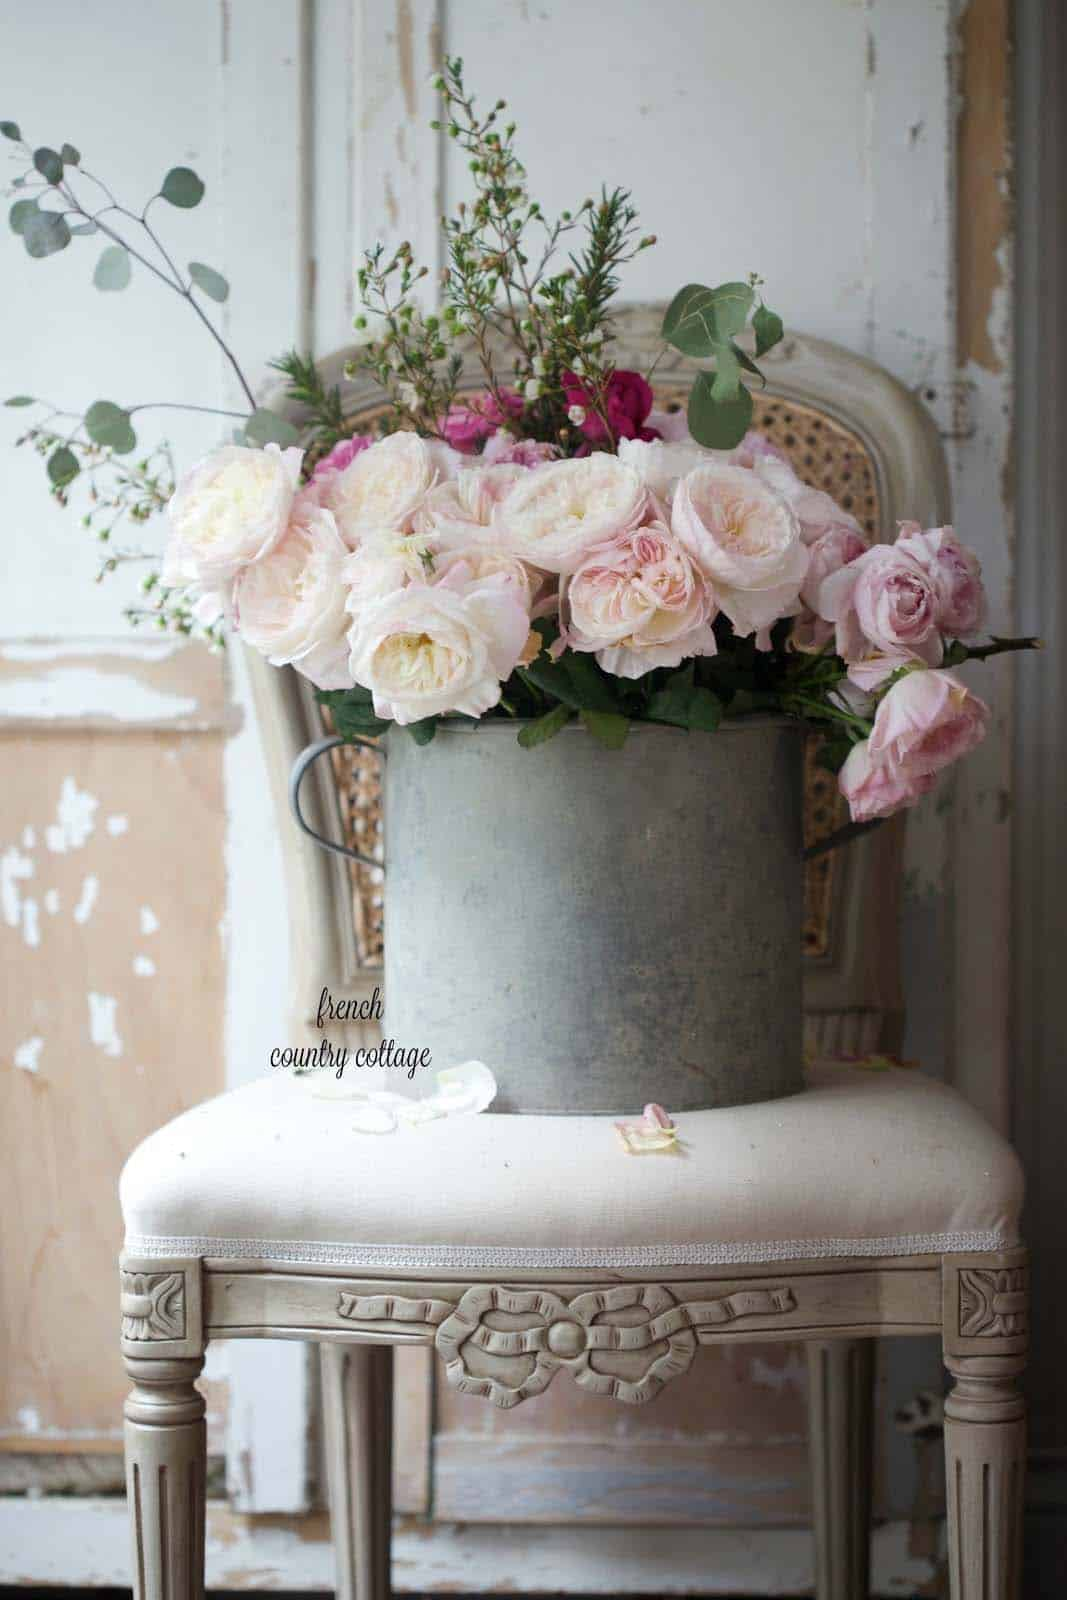 How To Decorate Your Home With Spring Floral Arrangements-04-1 Kindesign